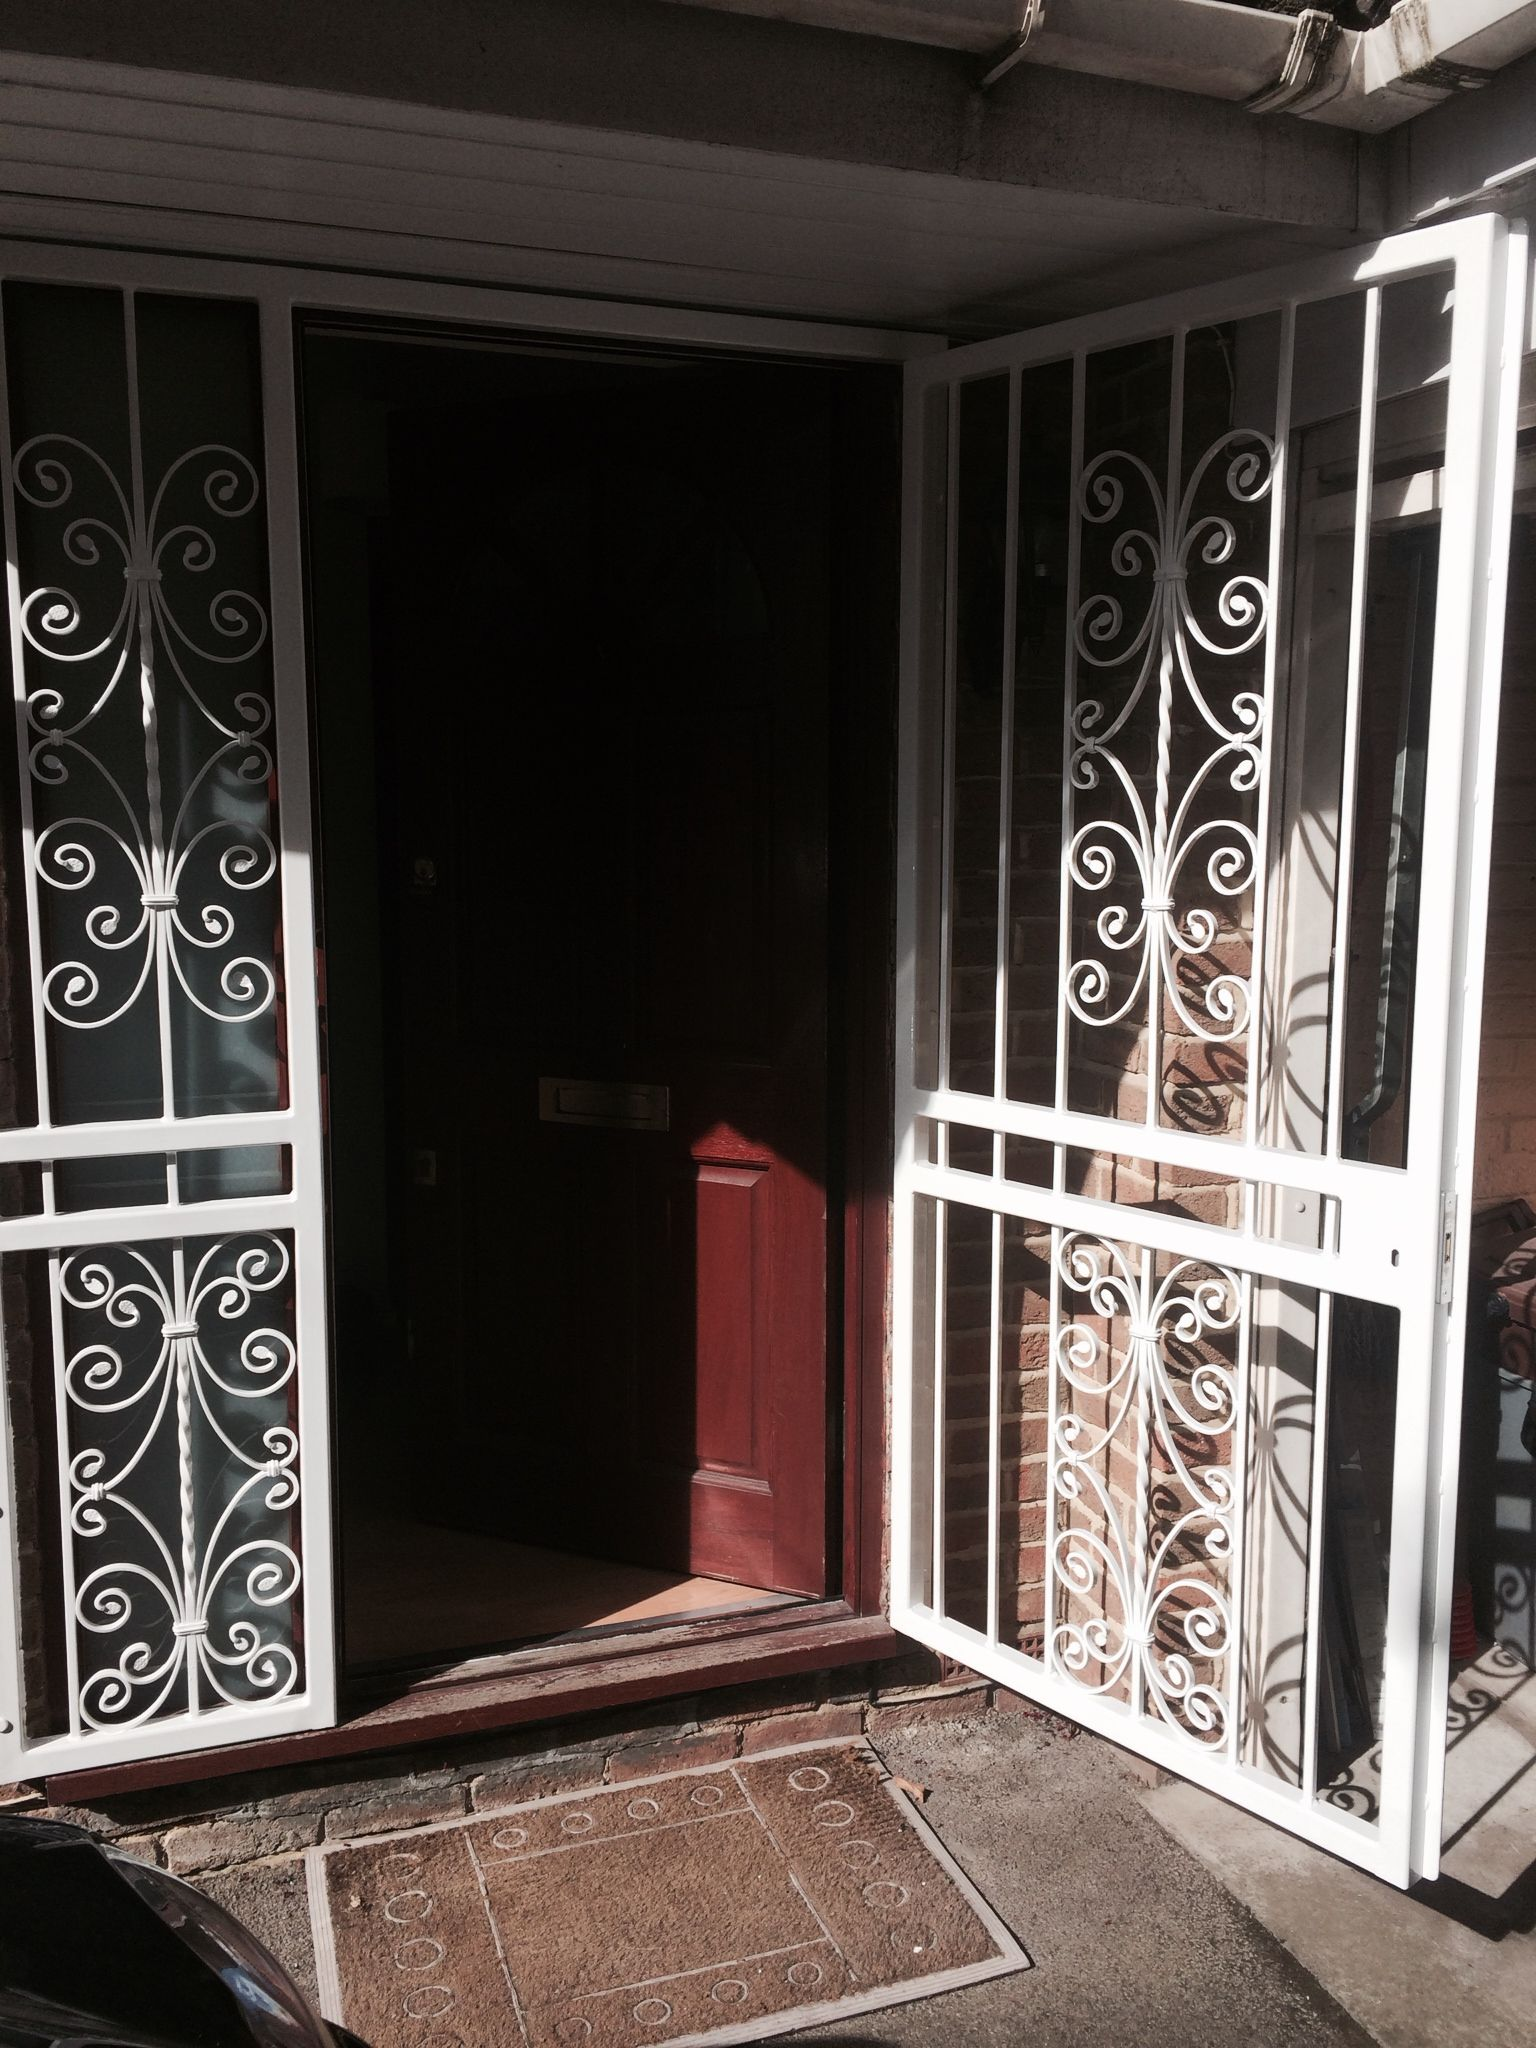 RSG3000 security door gate fitted to the main door of a